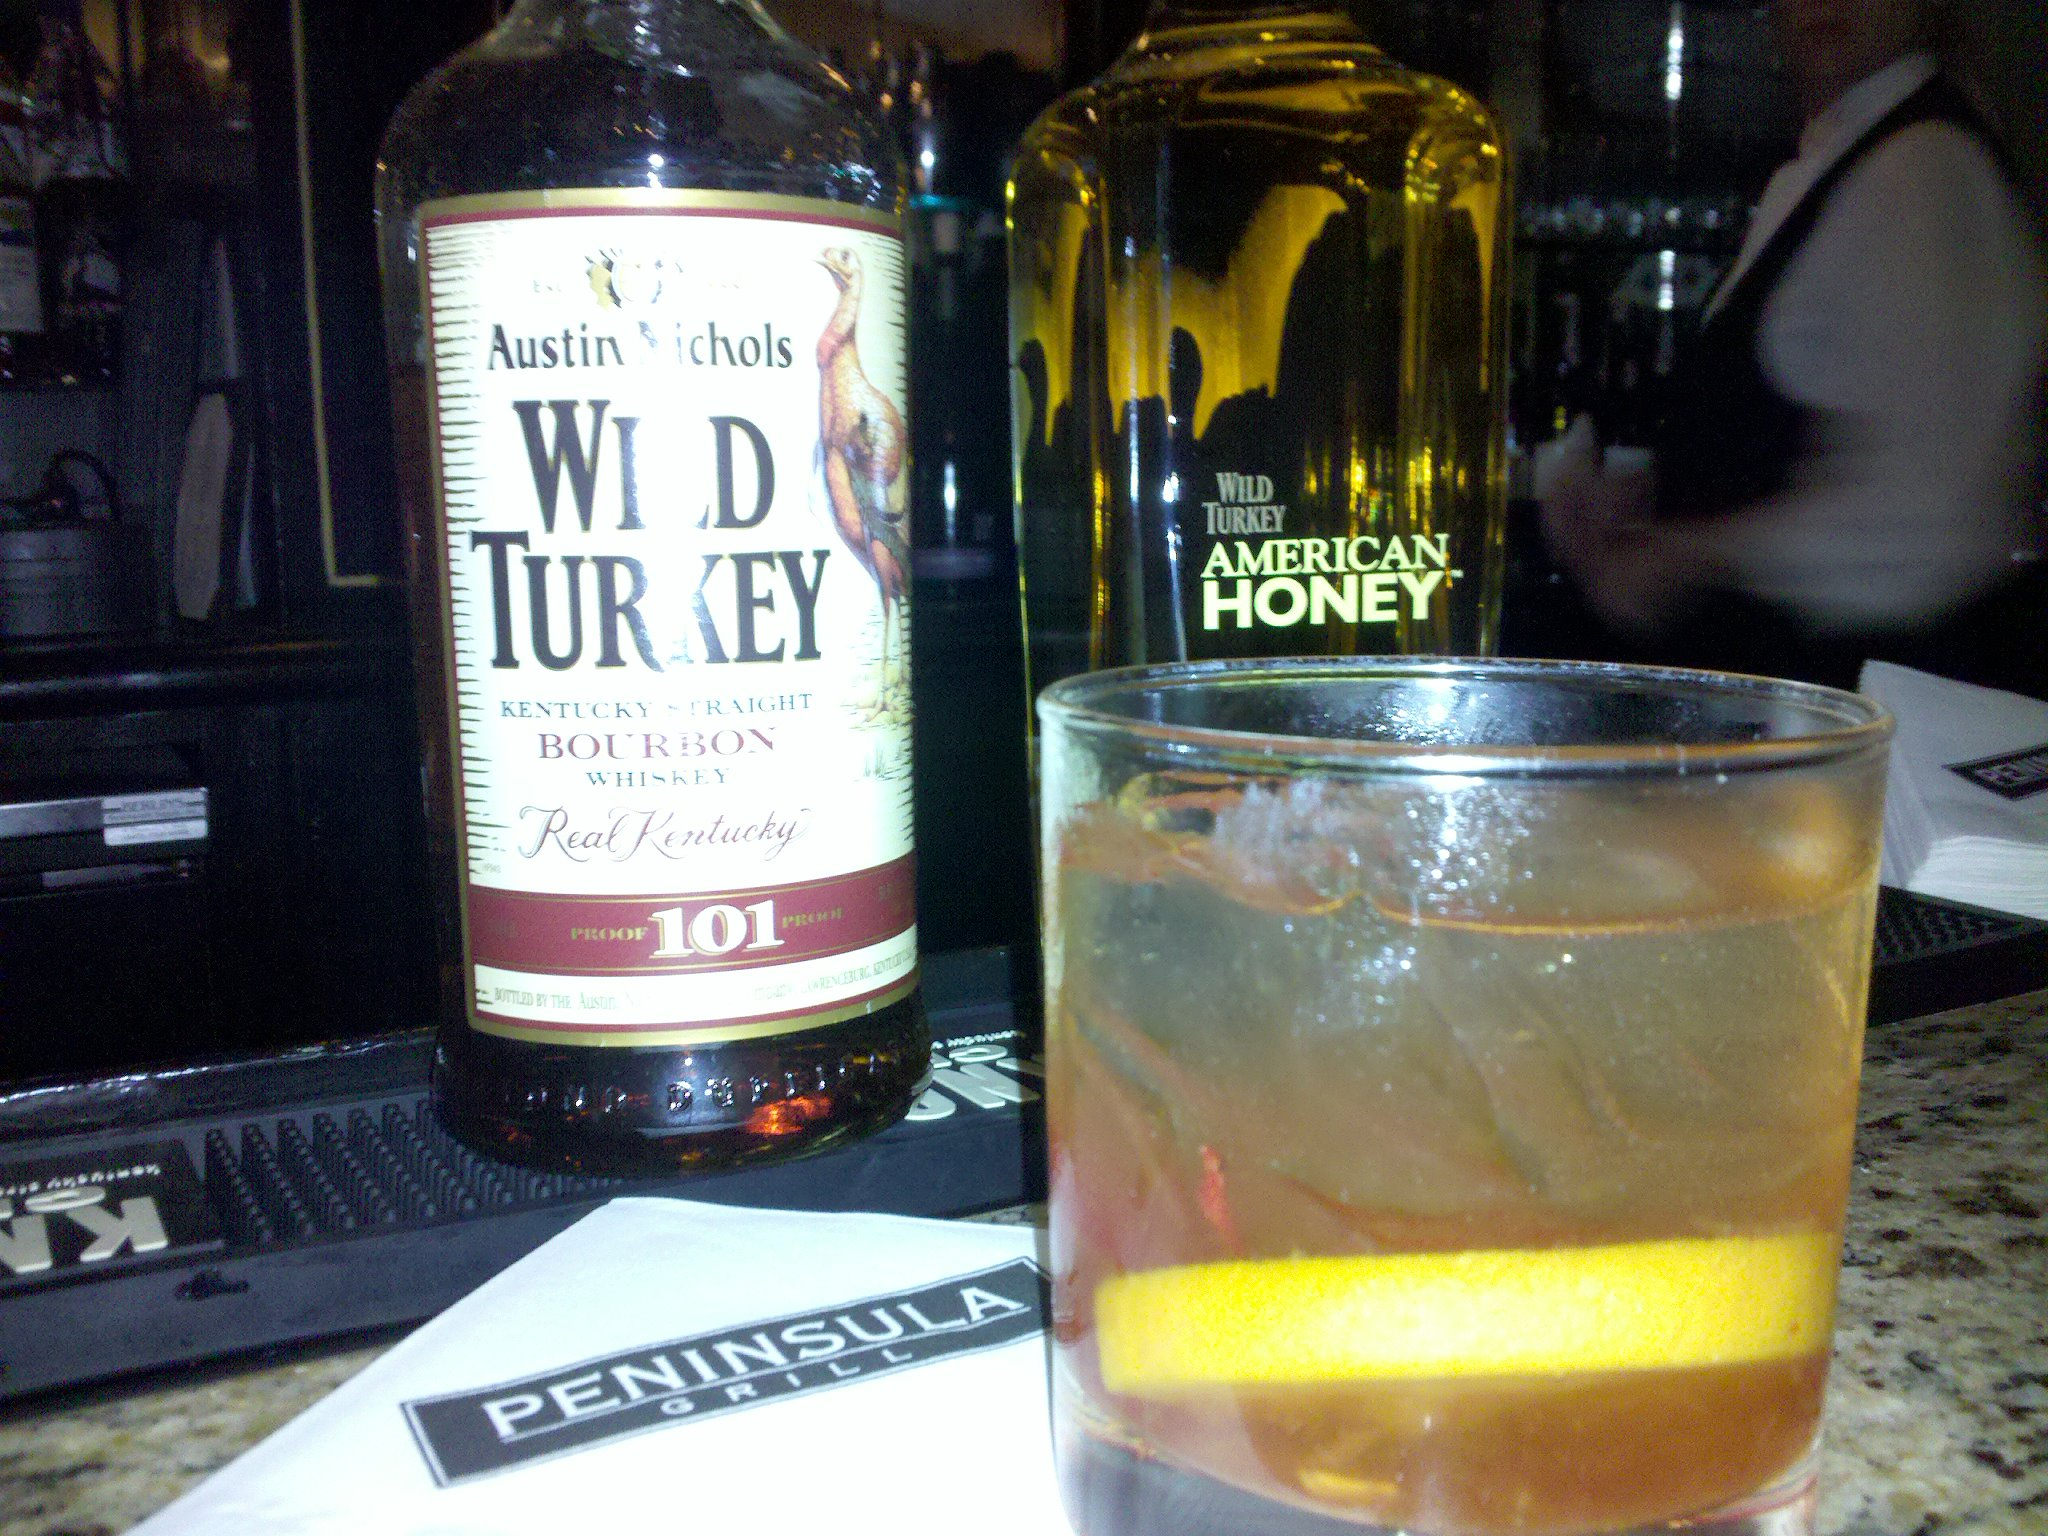 Wild Turkey American Honey Recipes And Bourbon Cocktails